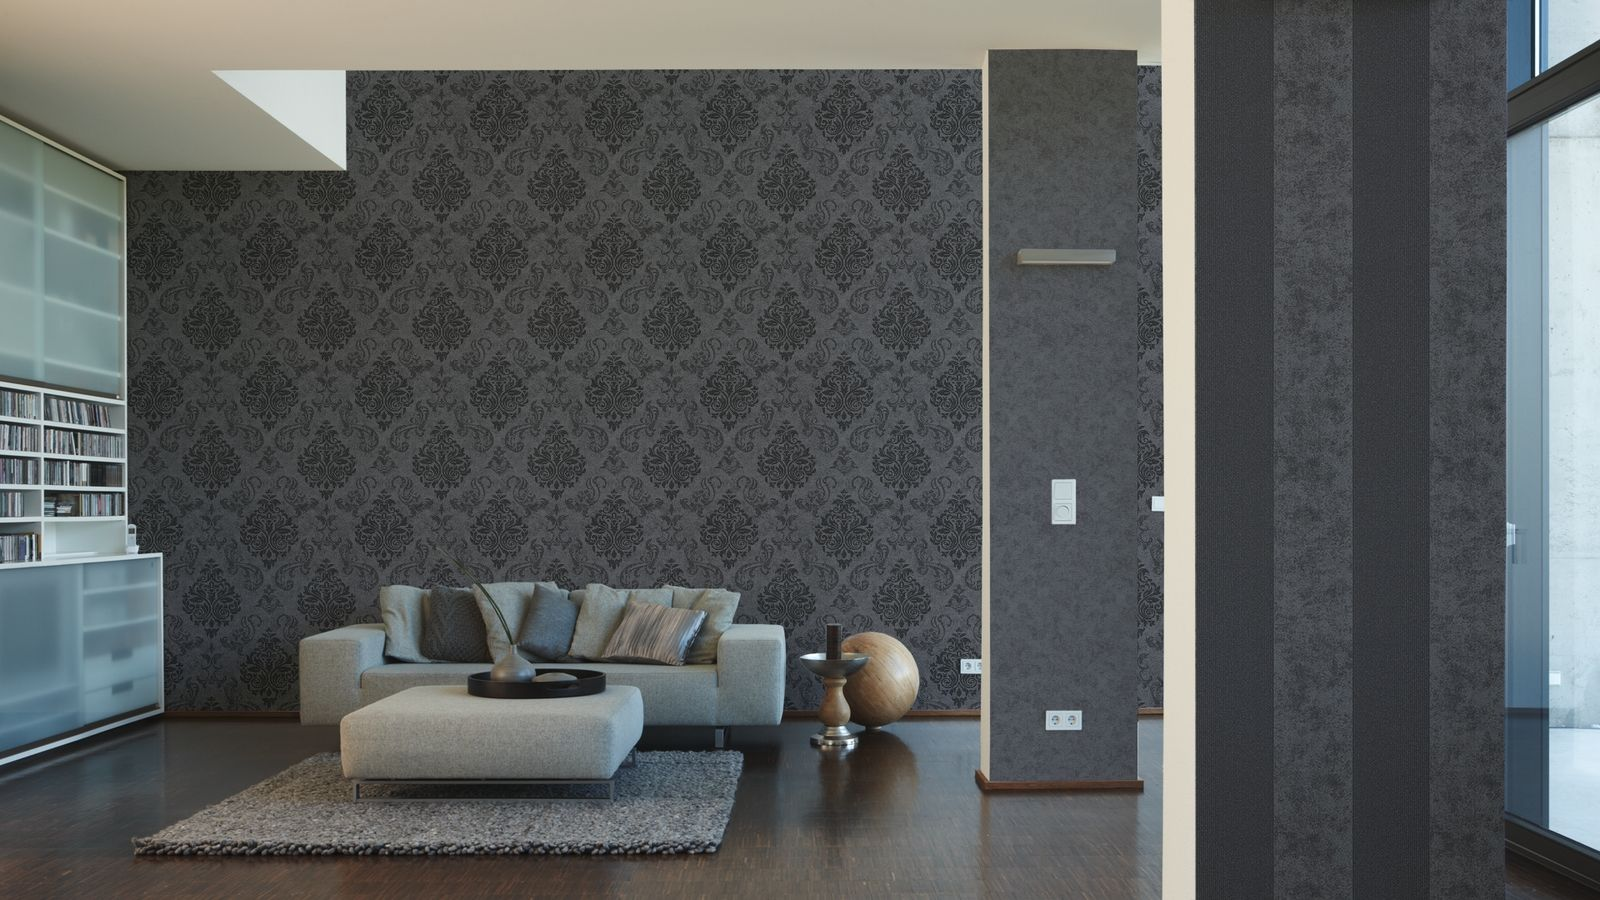 vlies tapete barock muster ornament anthrazit grau silber glitzer effekt kaufen bei joratrend e k. Black Bedroom Furniture Sets. Home Design Ideas